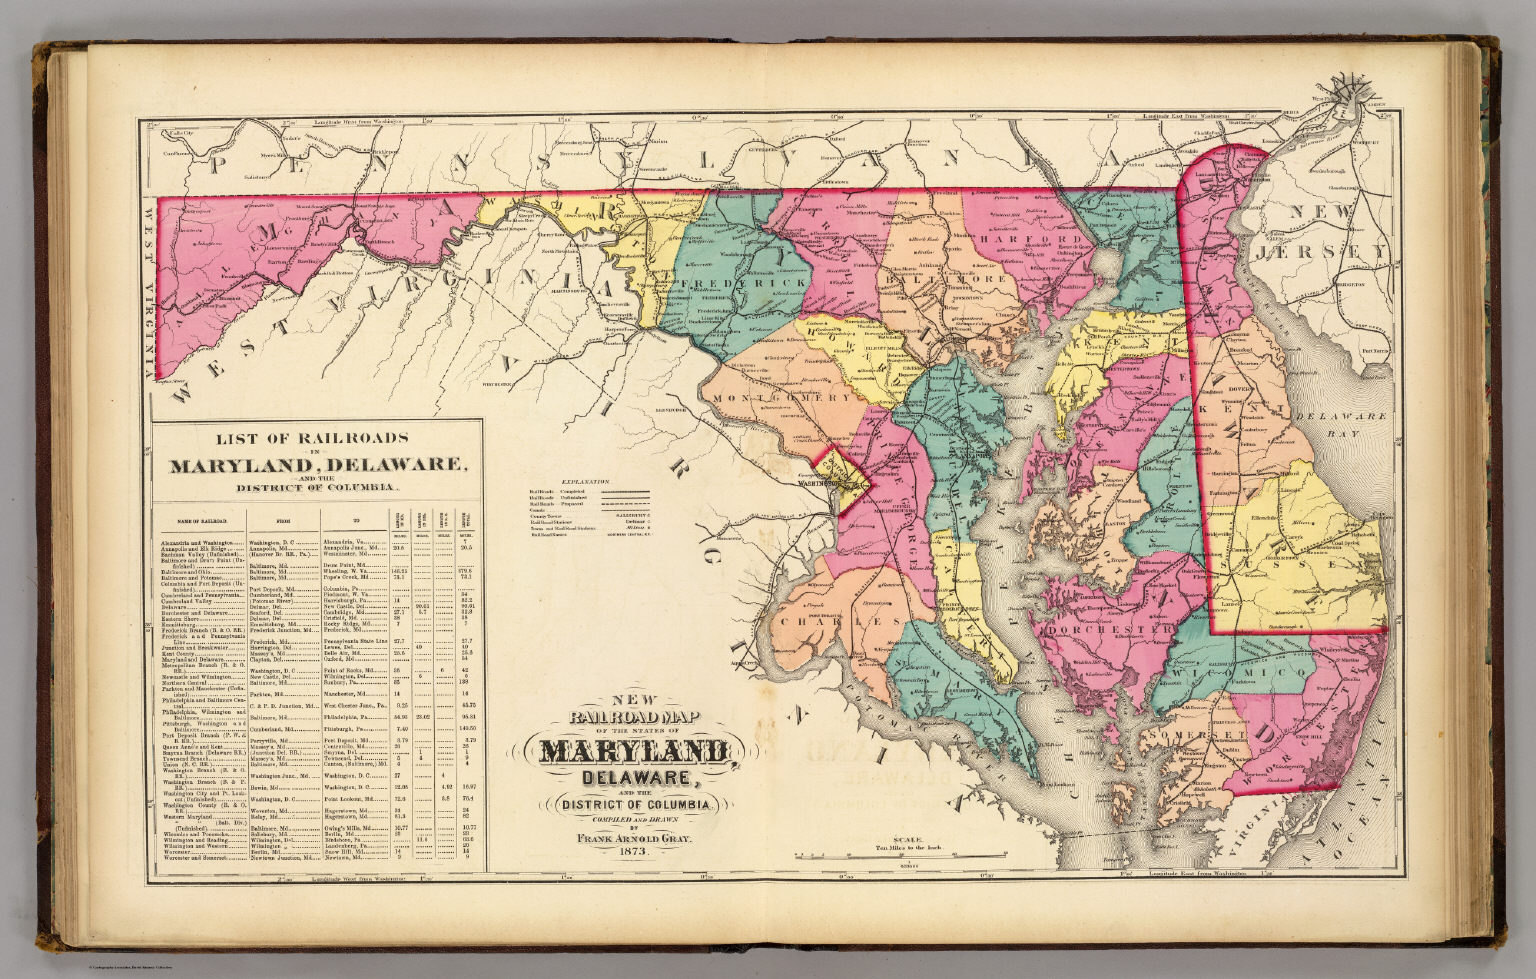 New railroad map of the states of Maryland, Delaware, & District of ...